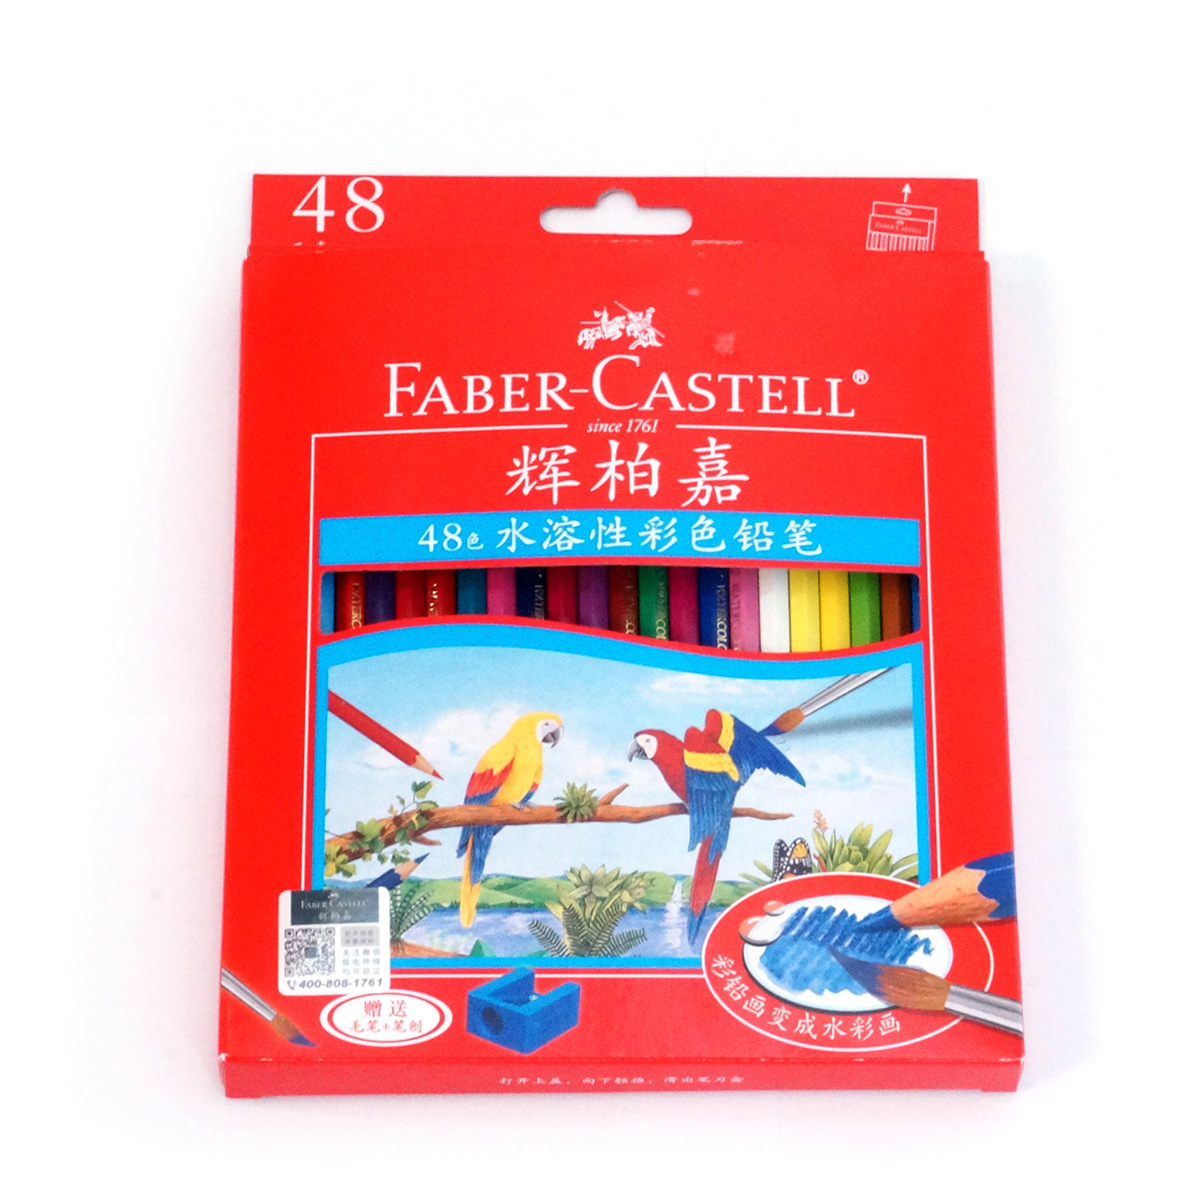 Faber-Castell 36 Color 48 Color Red Cardboard Box Fine Art Painted Water Soluble Colored Pencil Set Water Soluble Colored Pencil